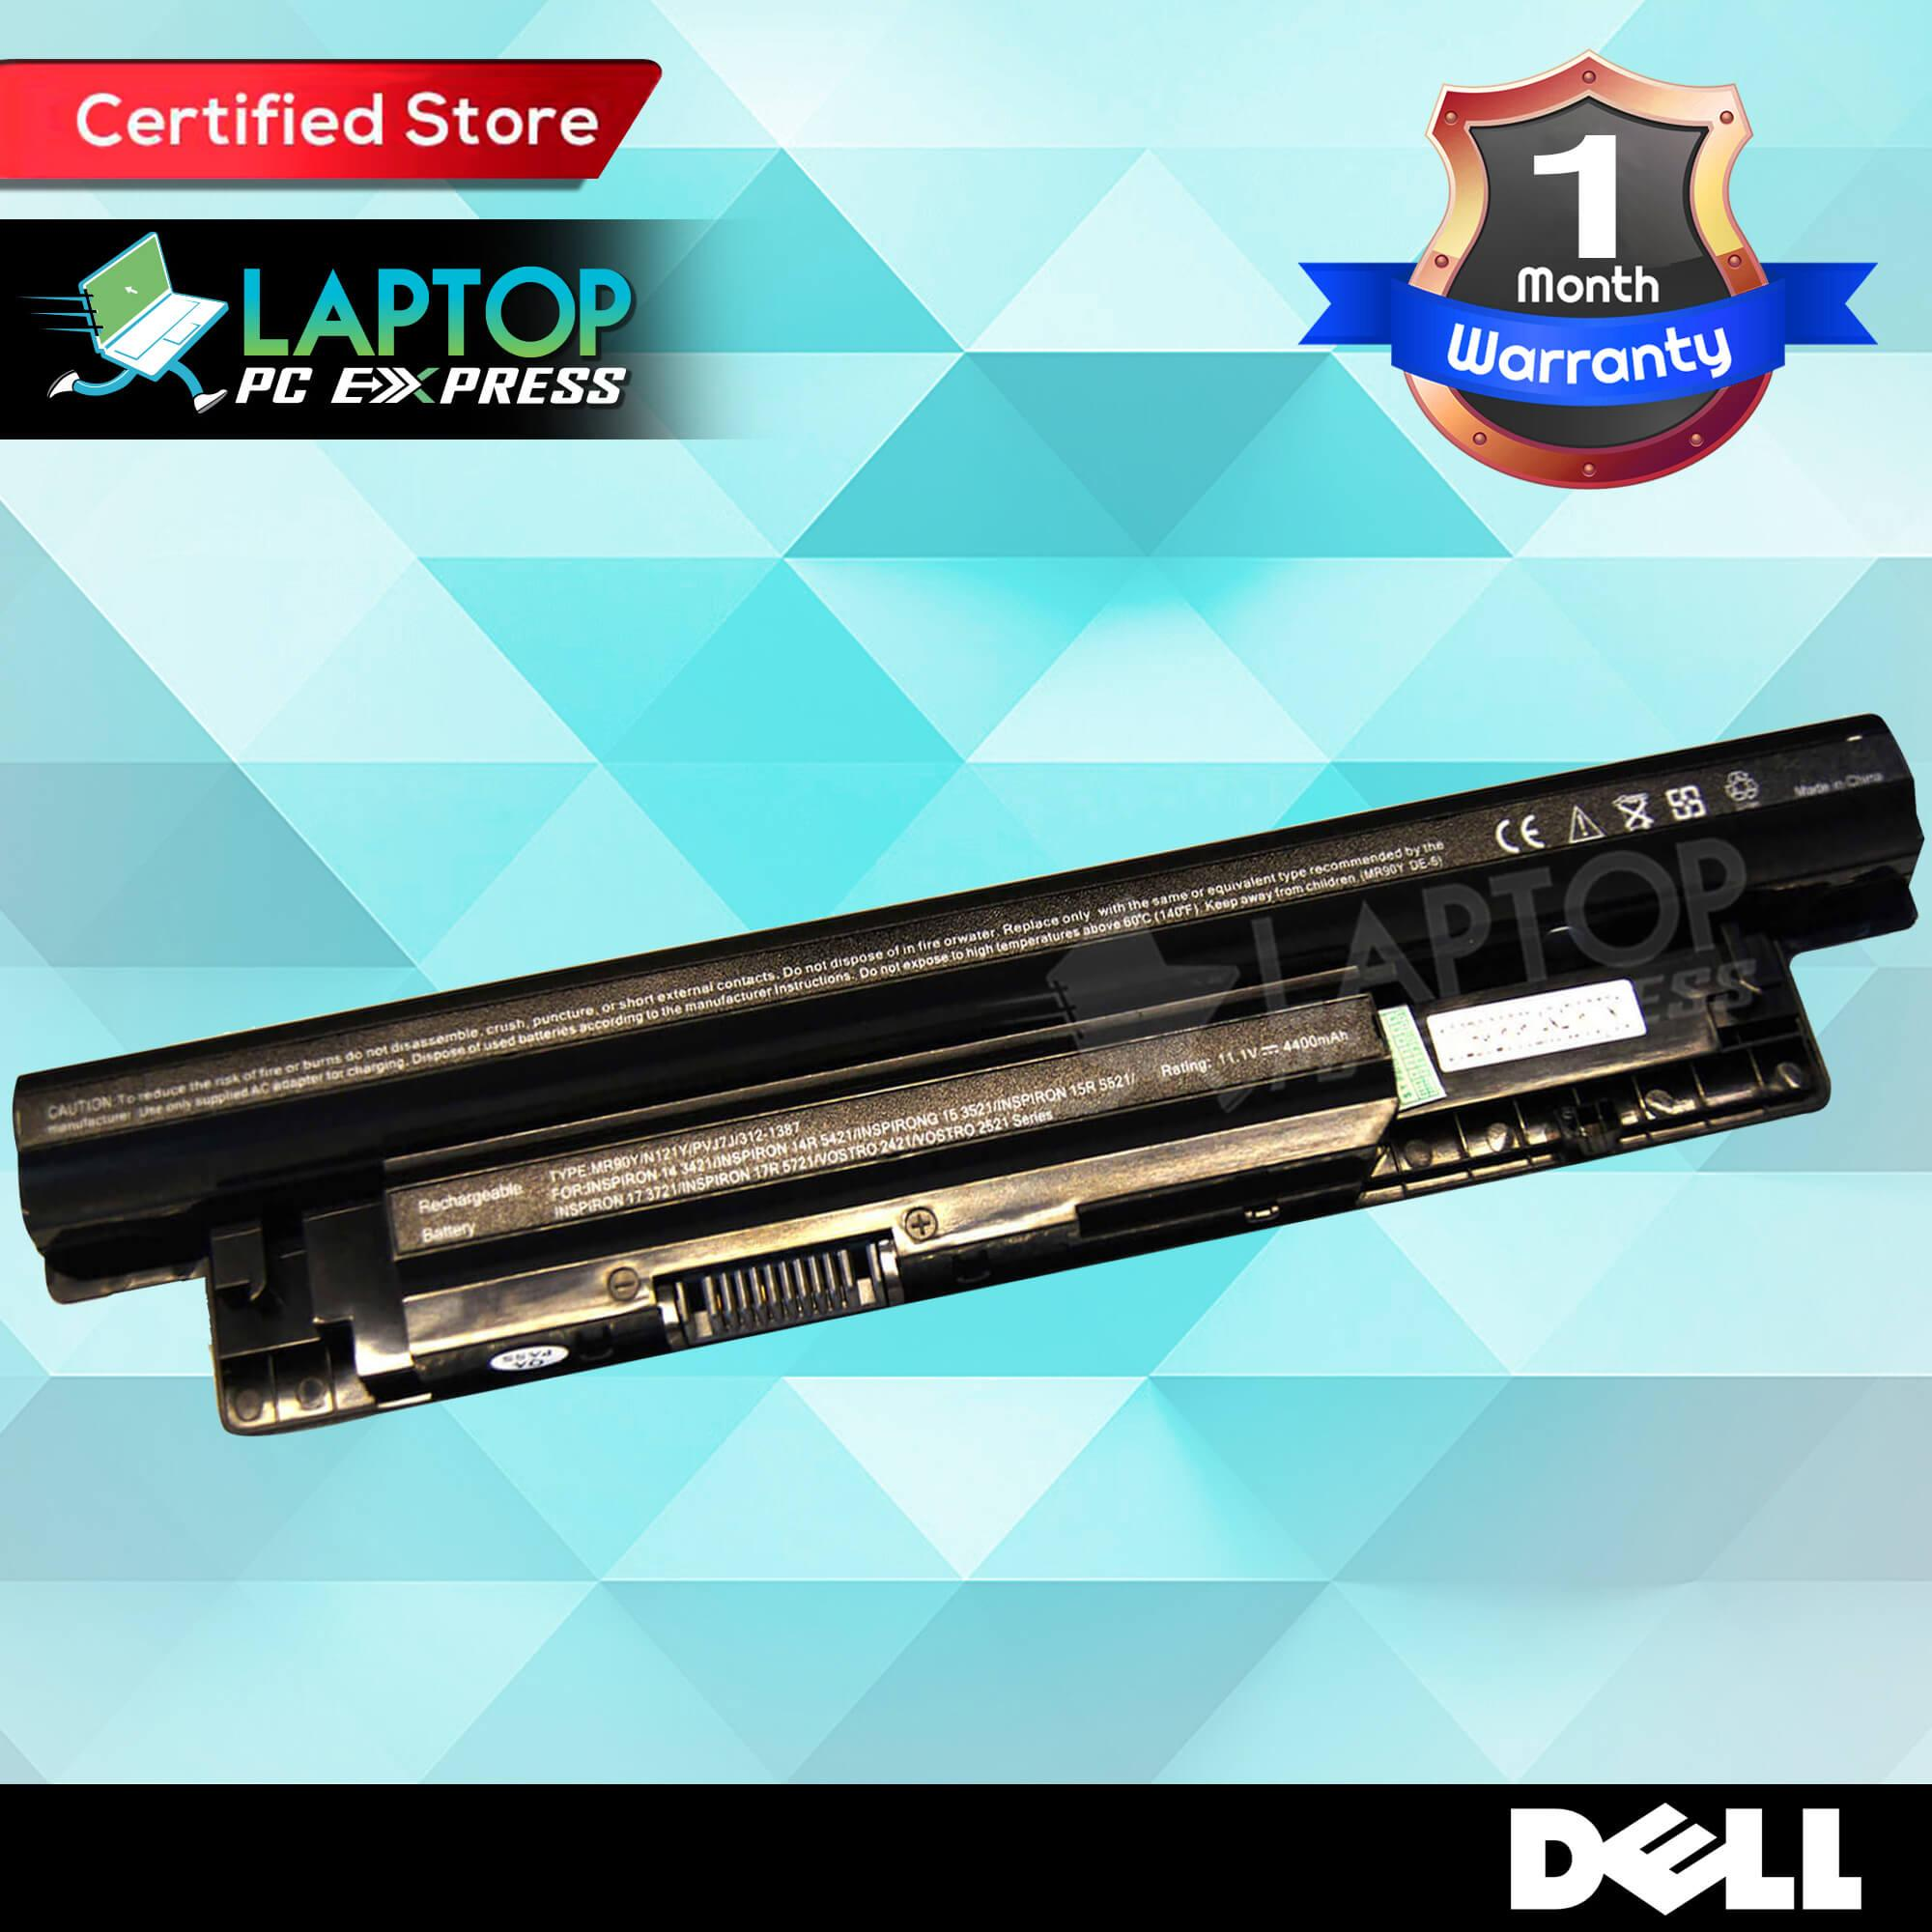 Dell Laptop Battery MR90Y For Inspiron 14 (3421) Inspiron 14R (5421)  Inspiron 14R (5437) Inspiron 15 (3521) Inspiron 15R (5521) Inspiron 15R  (5537)